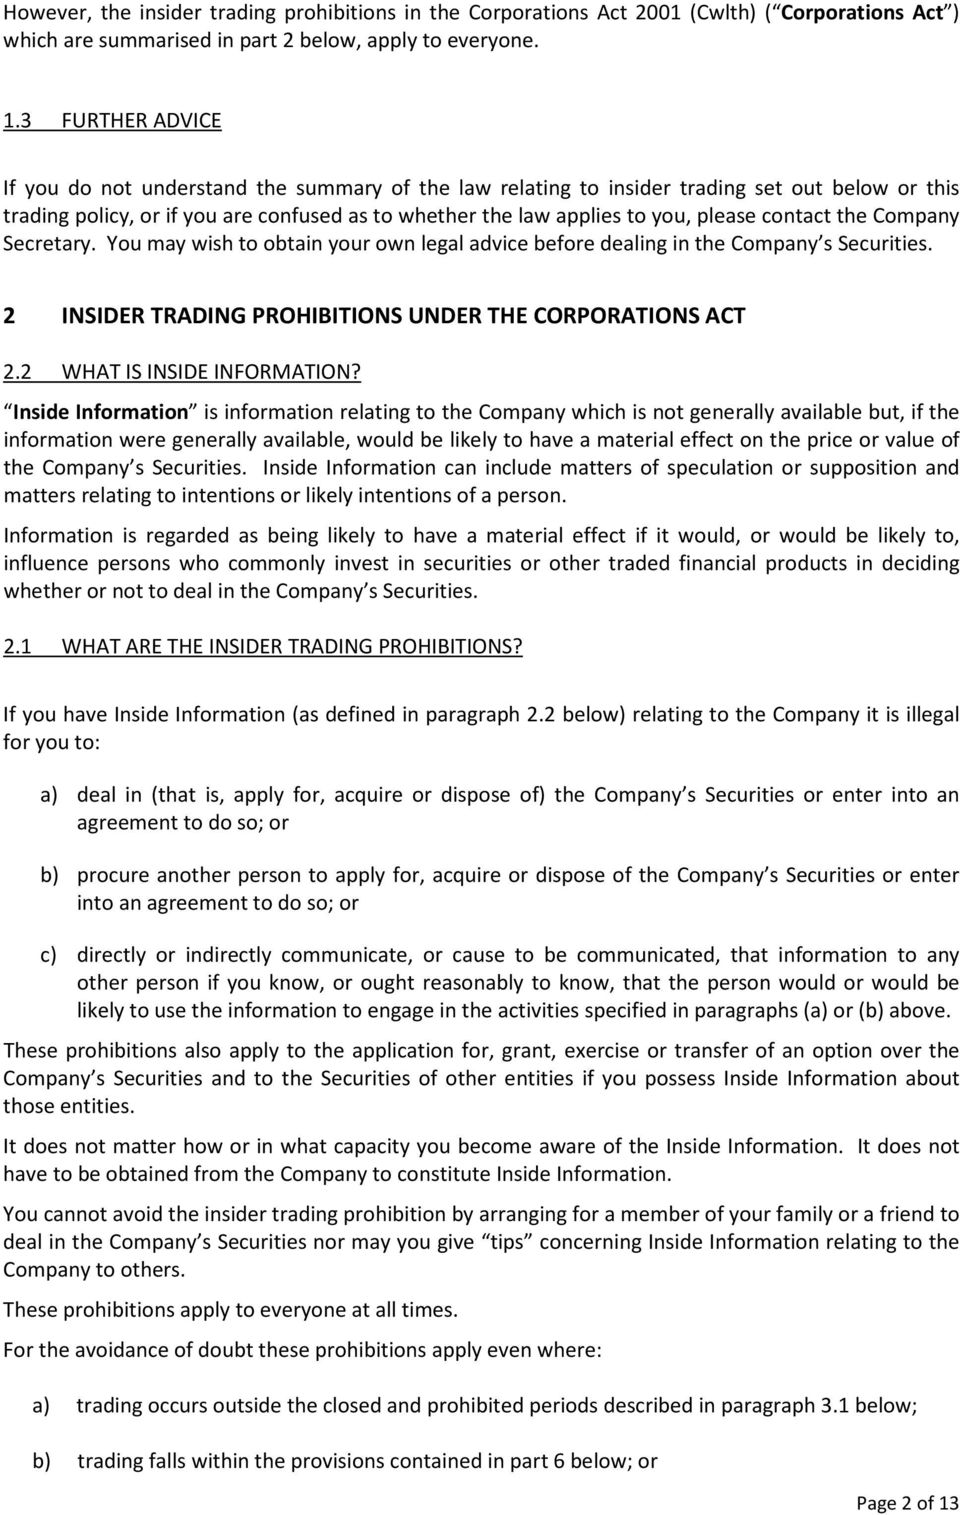 contact the Company Secretary. You may wish to obtain your own legal advice before dealing in the Company s Securities. 2 INSIDER TRADING PROHIBITIONS UNDER THE CORPORATIONS ACT 2.